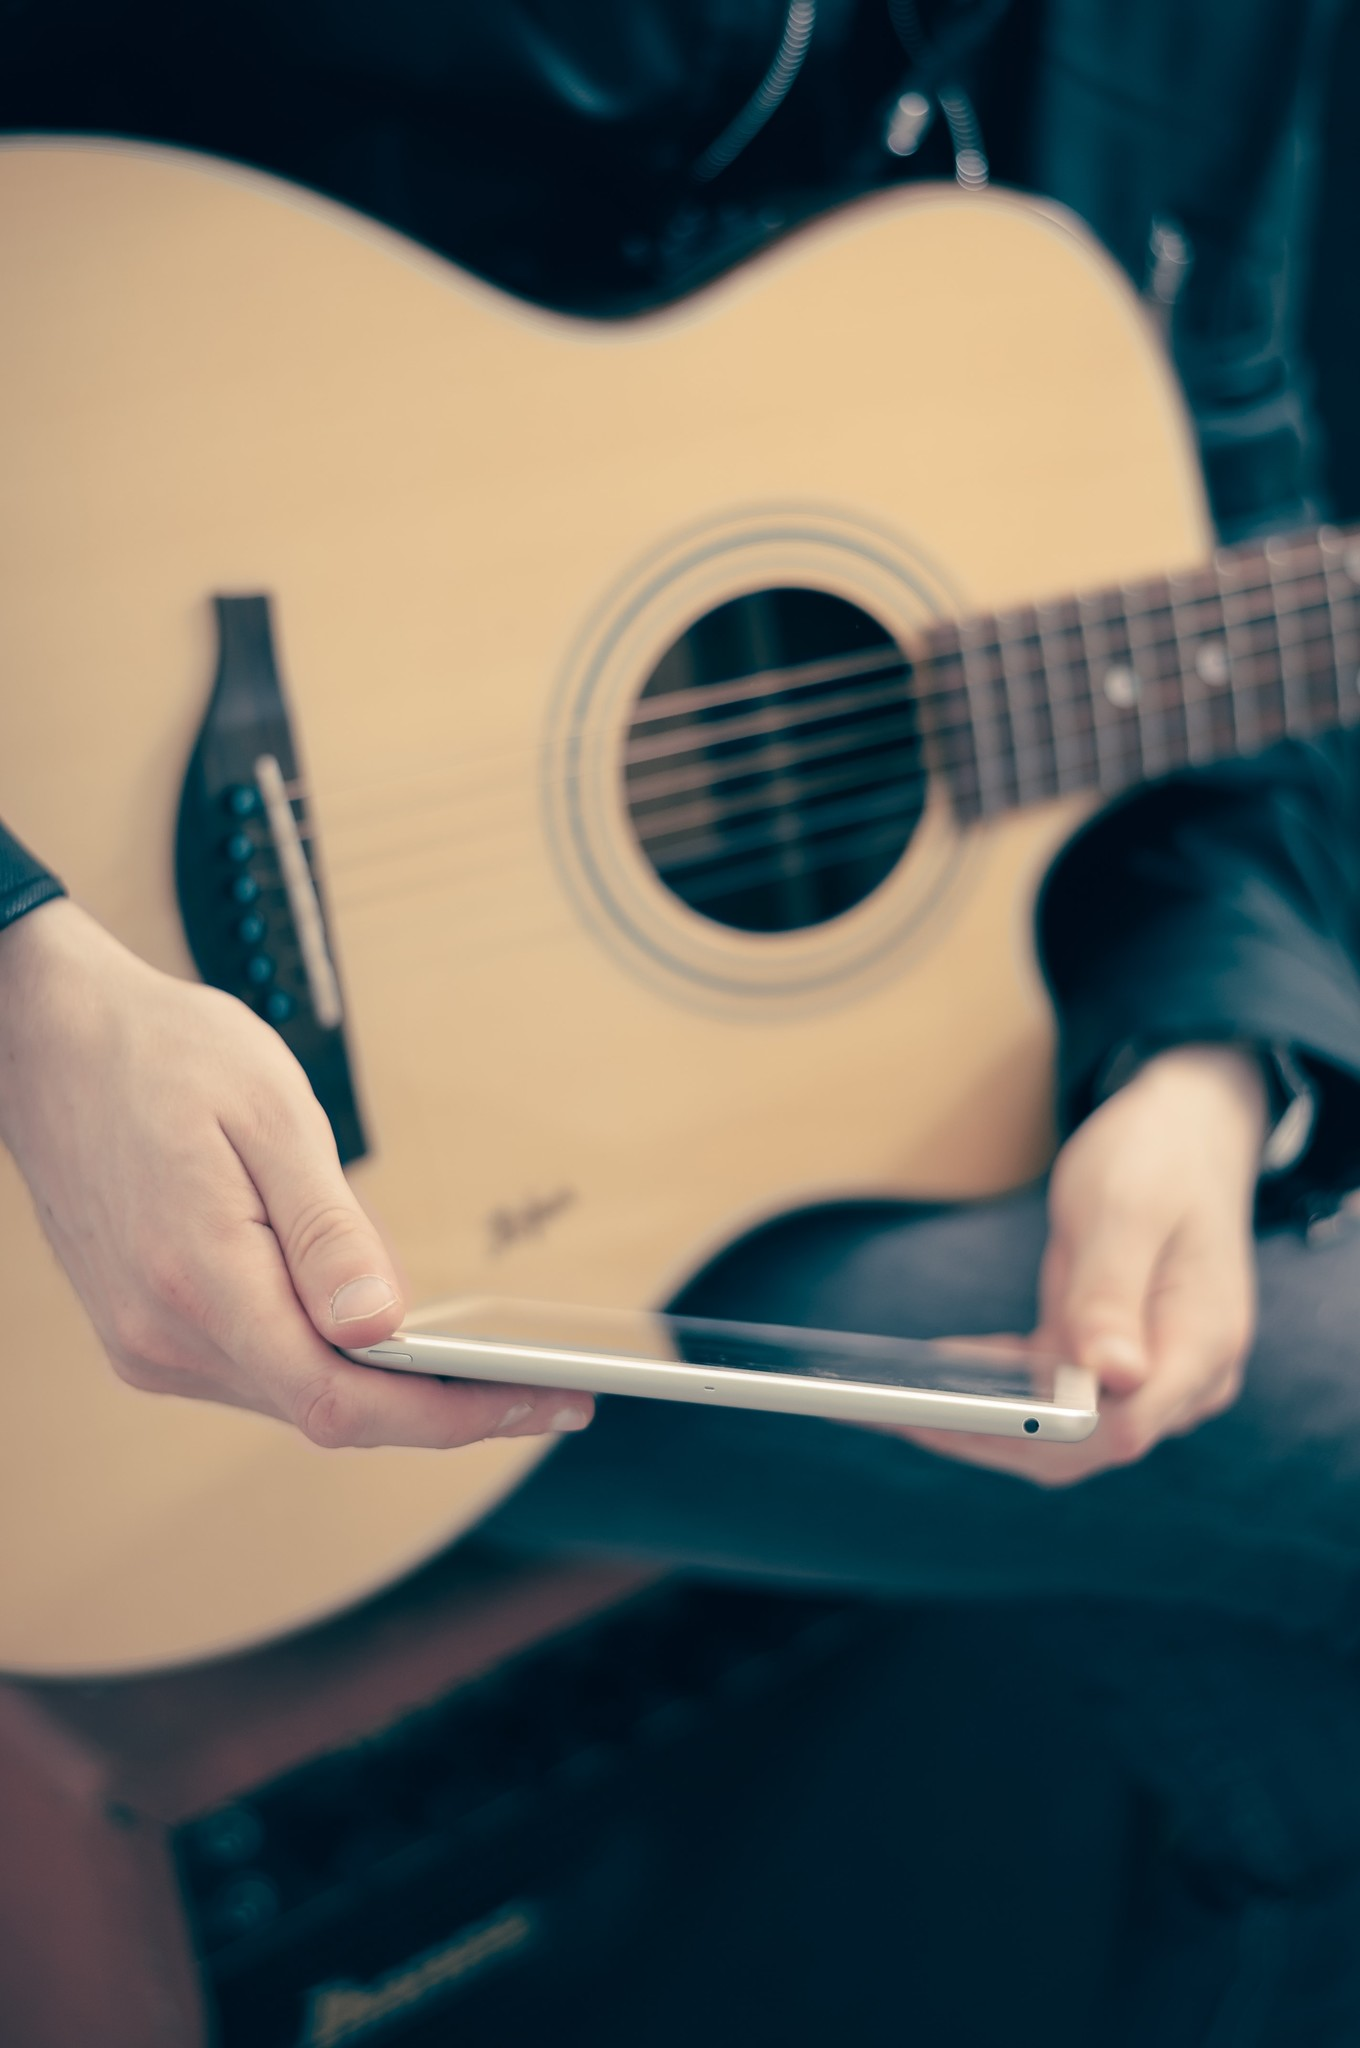 The best free apps for guitarists!